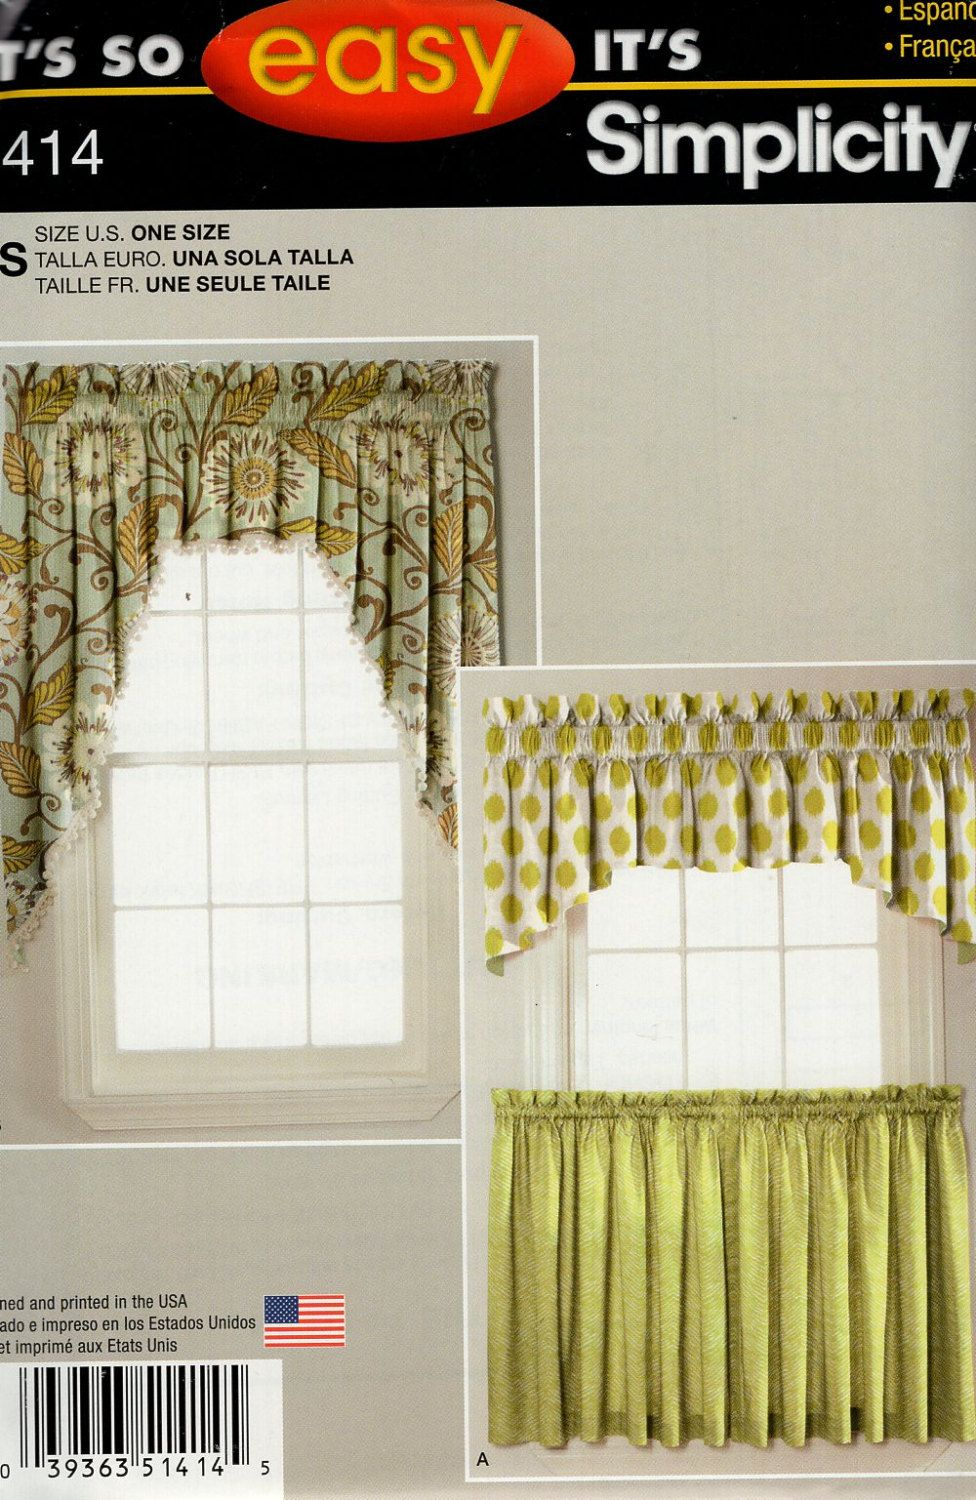 Simplicity Window Treatments Sewing Pattern 1414 Free Us Ship